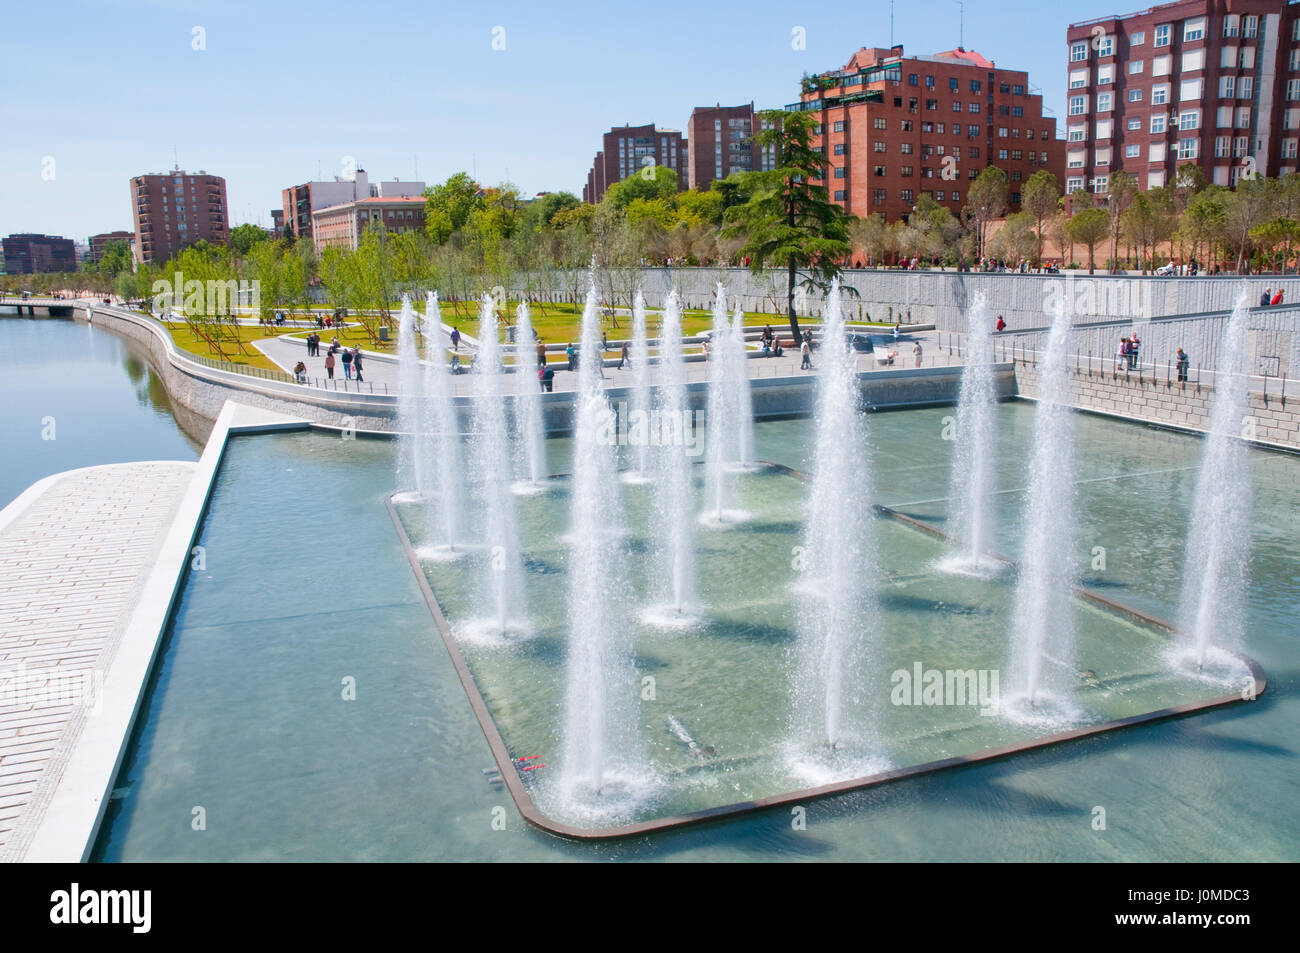 Fountain and pond. Madrid Rio park, Madrid, Spain. - Stock Image